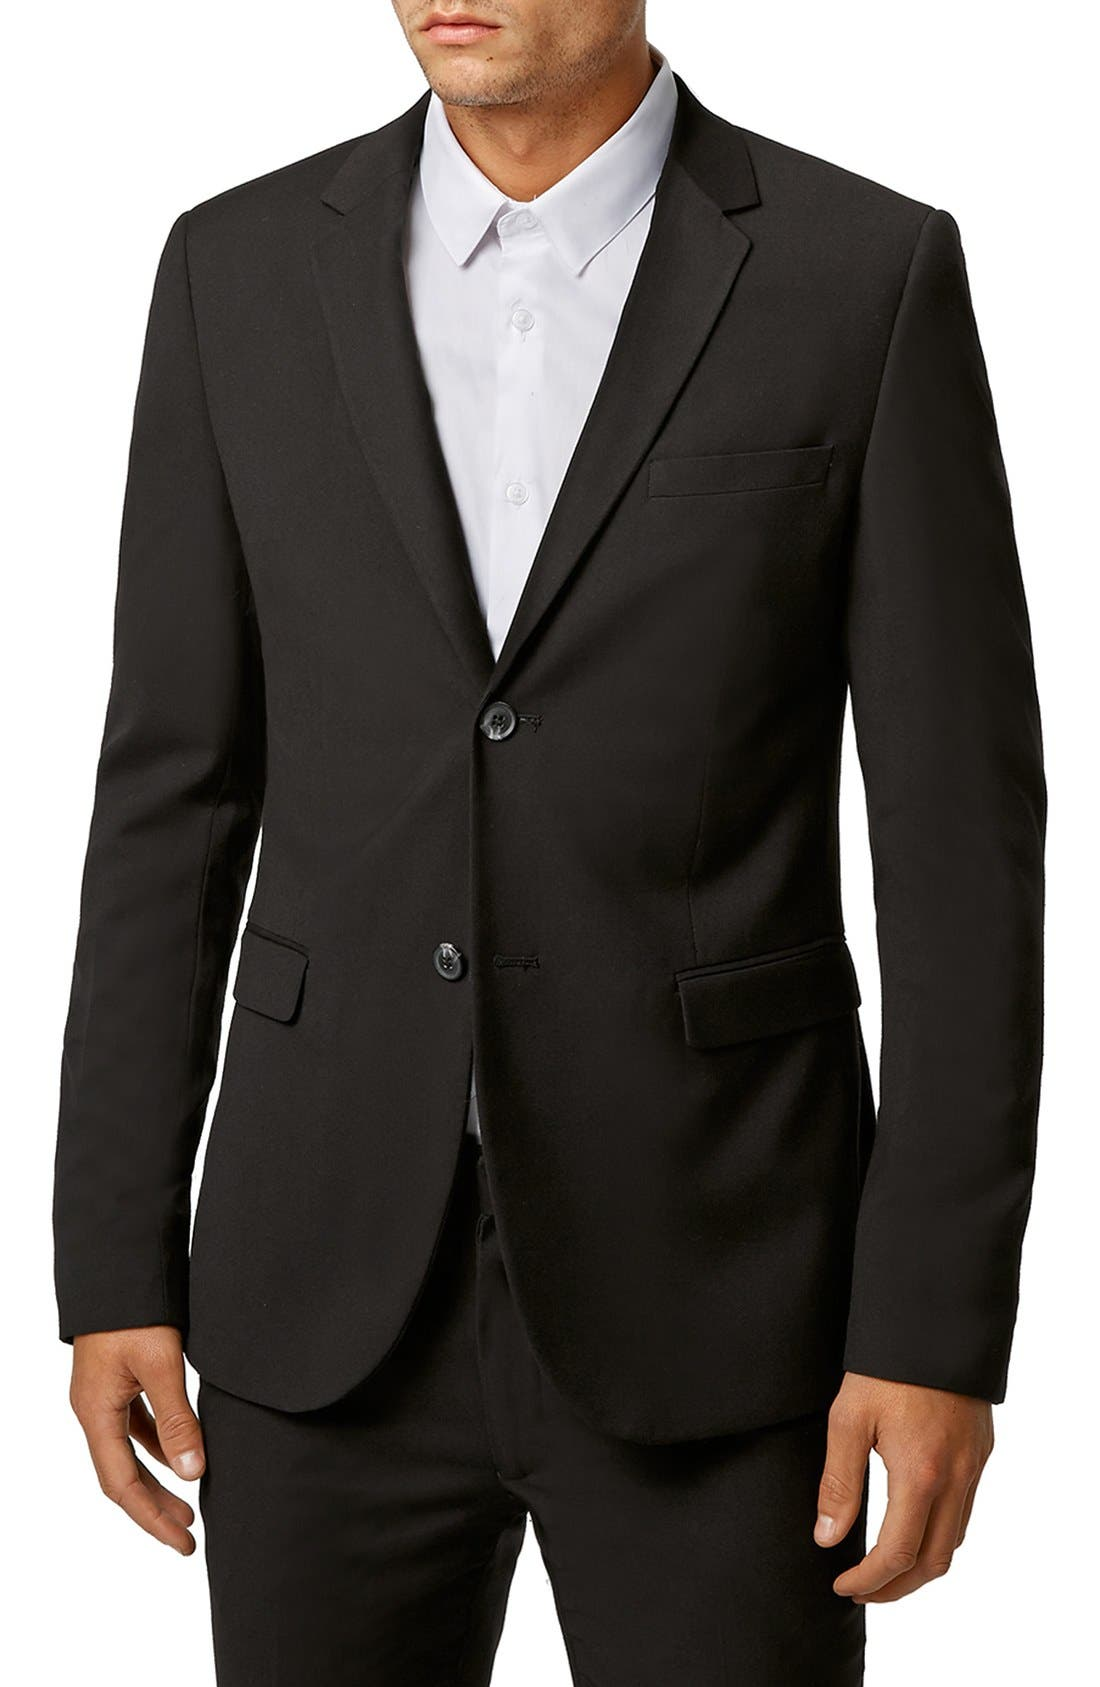 Ultra Skinny Black Suit Jacket,                             Main thumbnail 1, color,                             BLACK